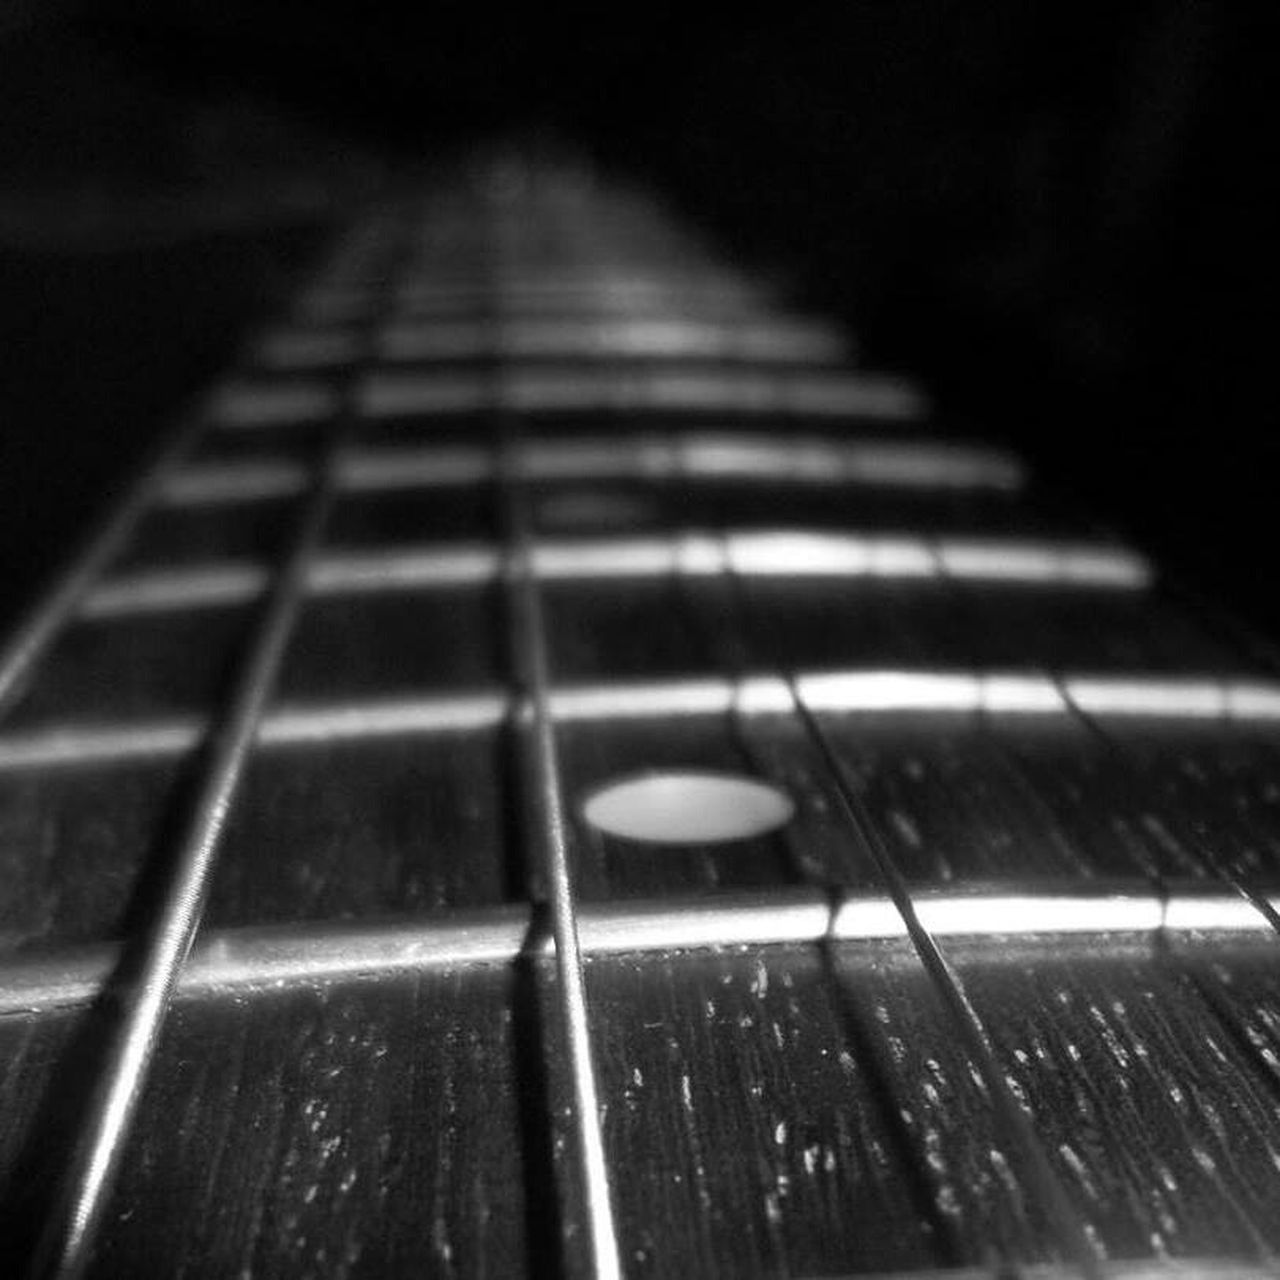 music, musical instrument, arts culture and entertainment, guitar, musical instrument string, indoors, close-up, no people, fretboard, day